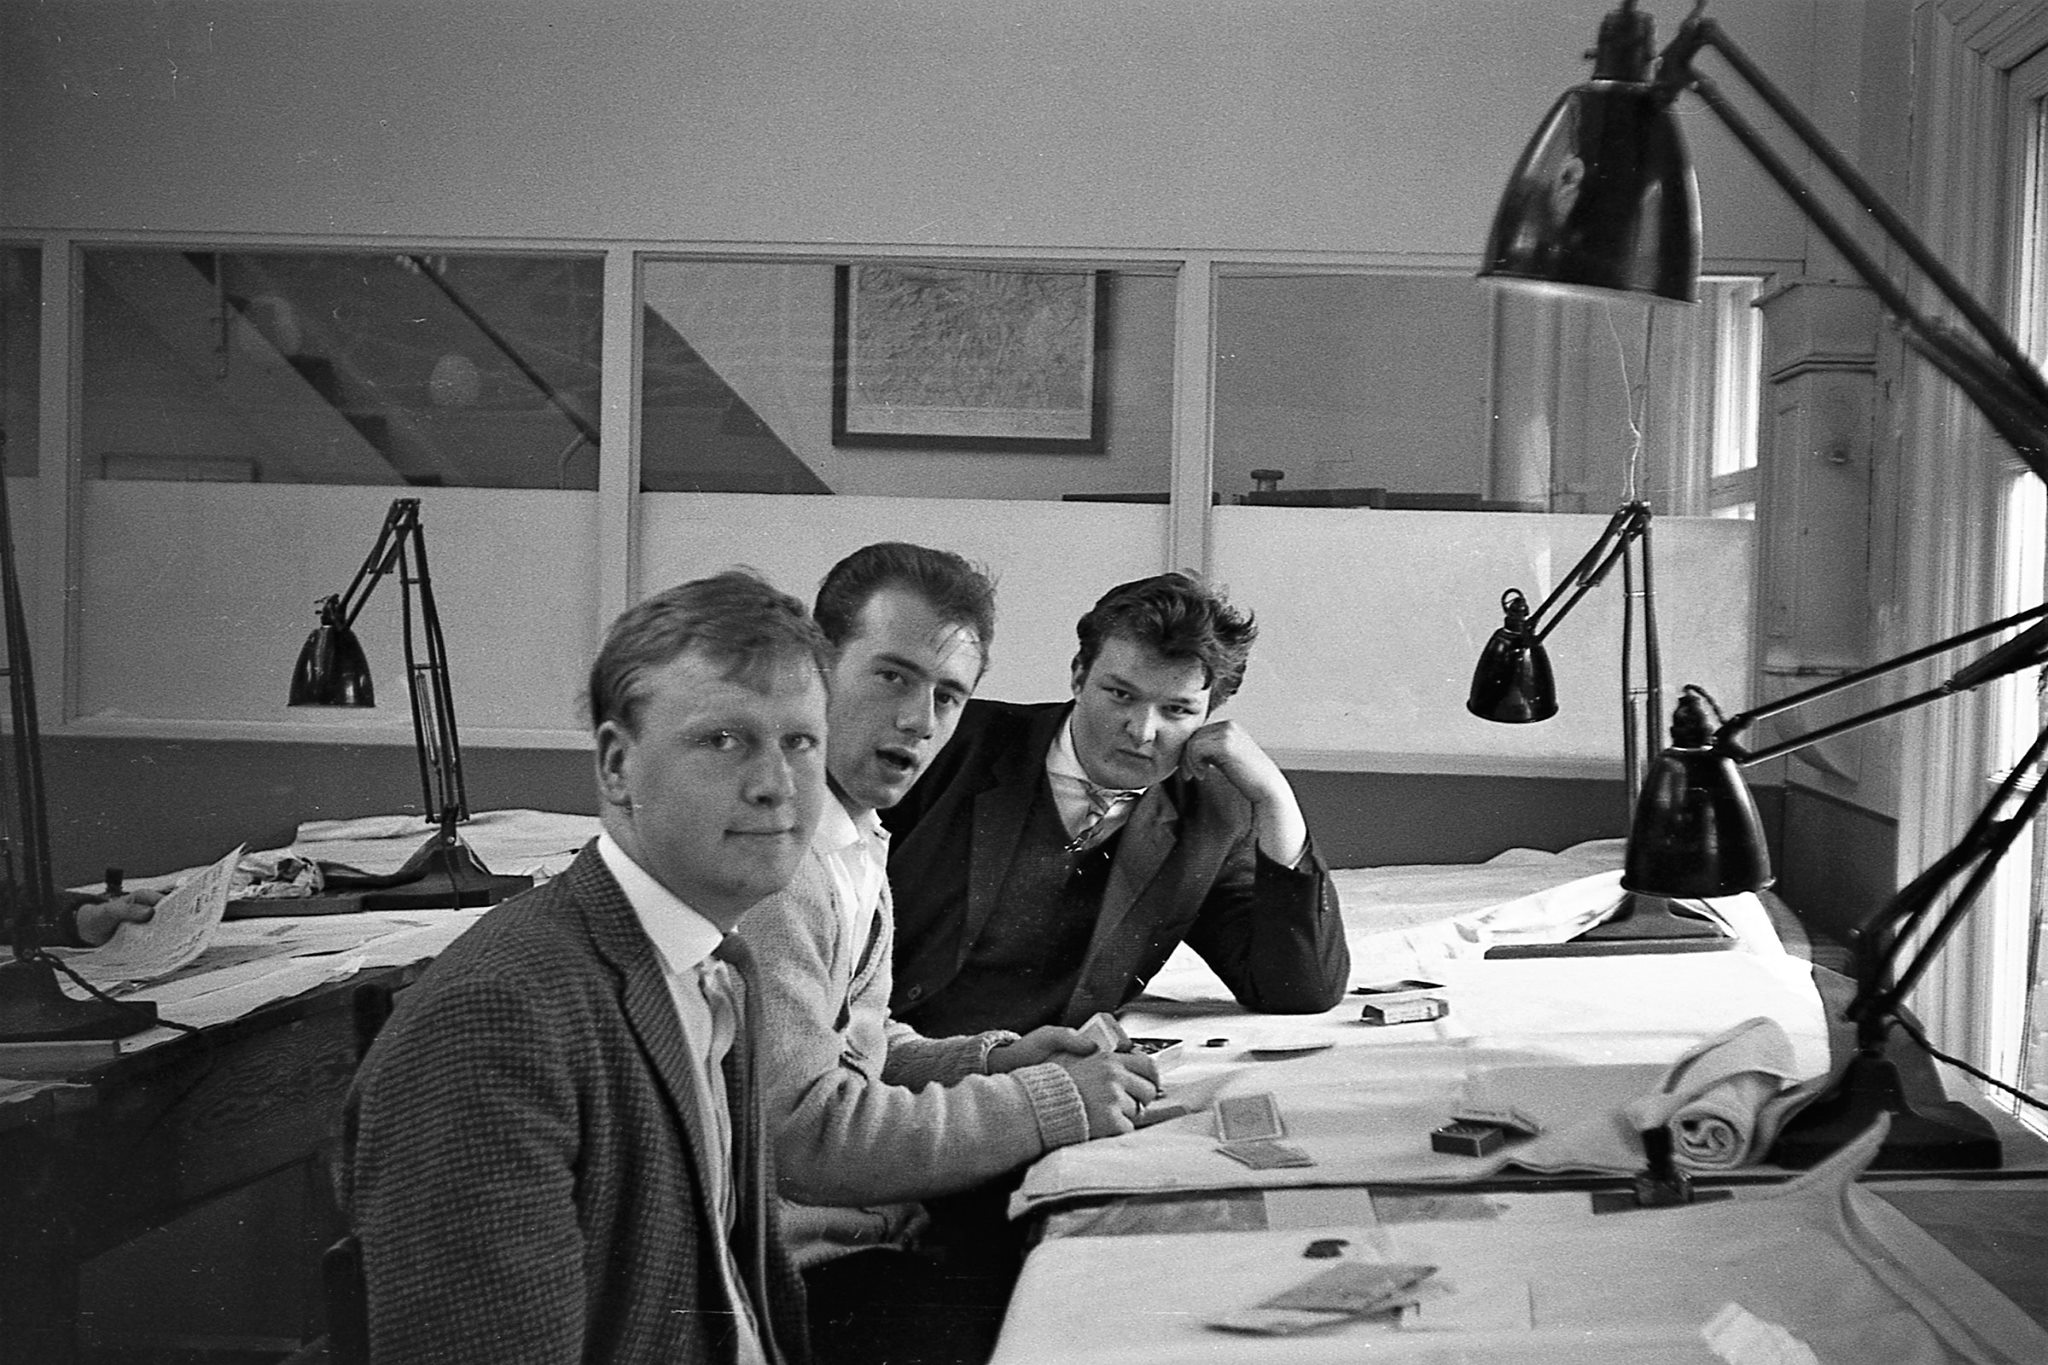 London Road Drawing School at lunchtime in 1961